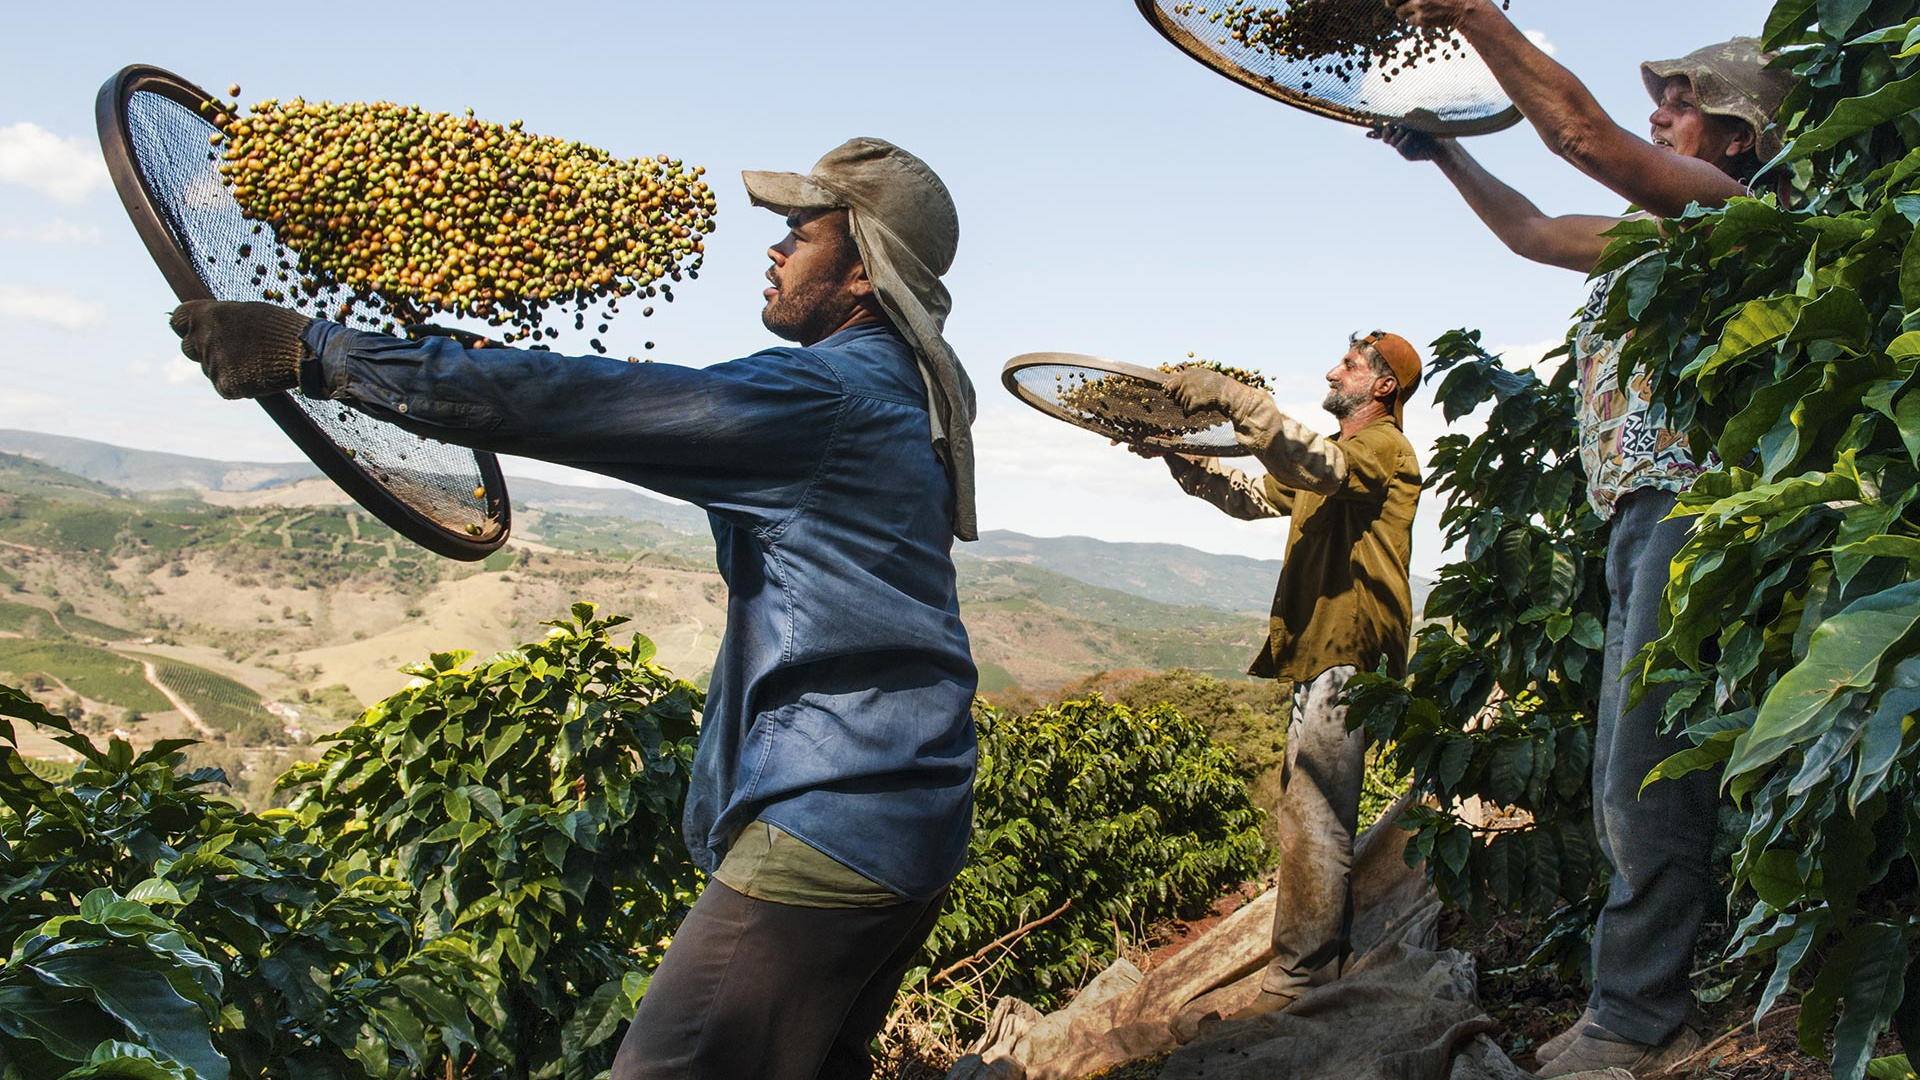 Coffee growing in Brazil. Photograph by Lavazza/Steve McCurry